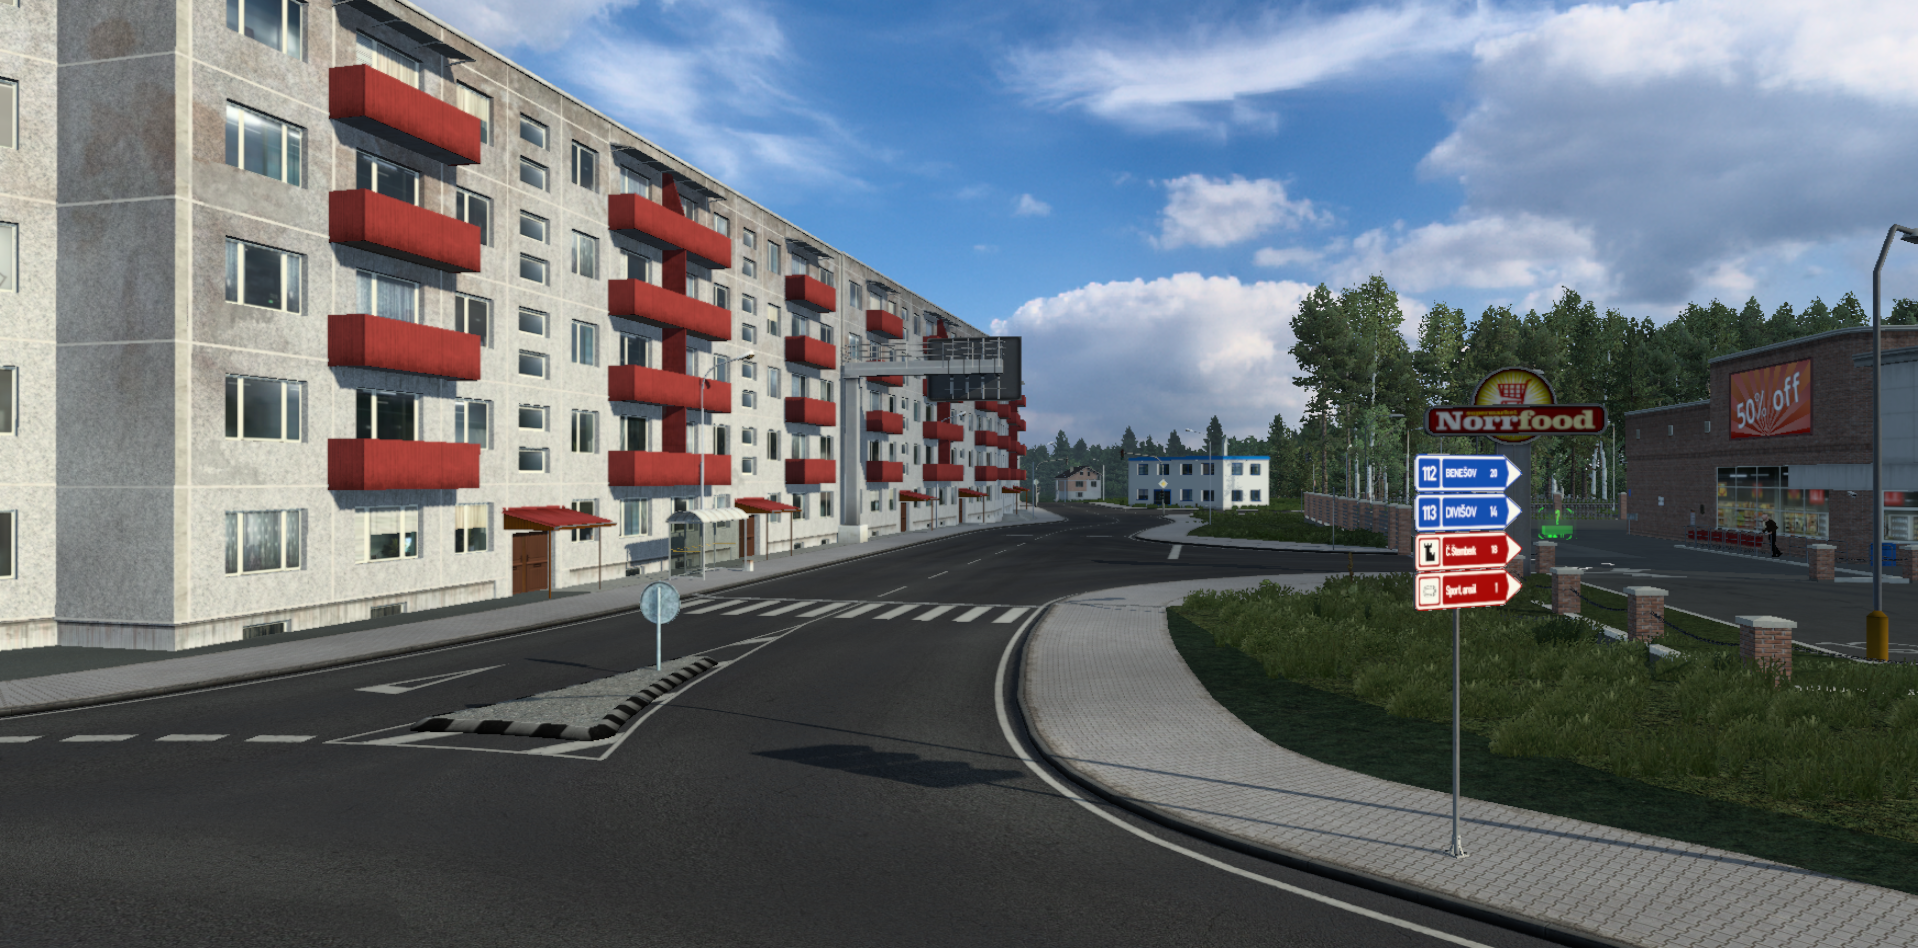 ets2_20210606_172338_00.png